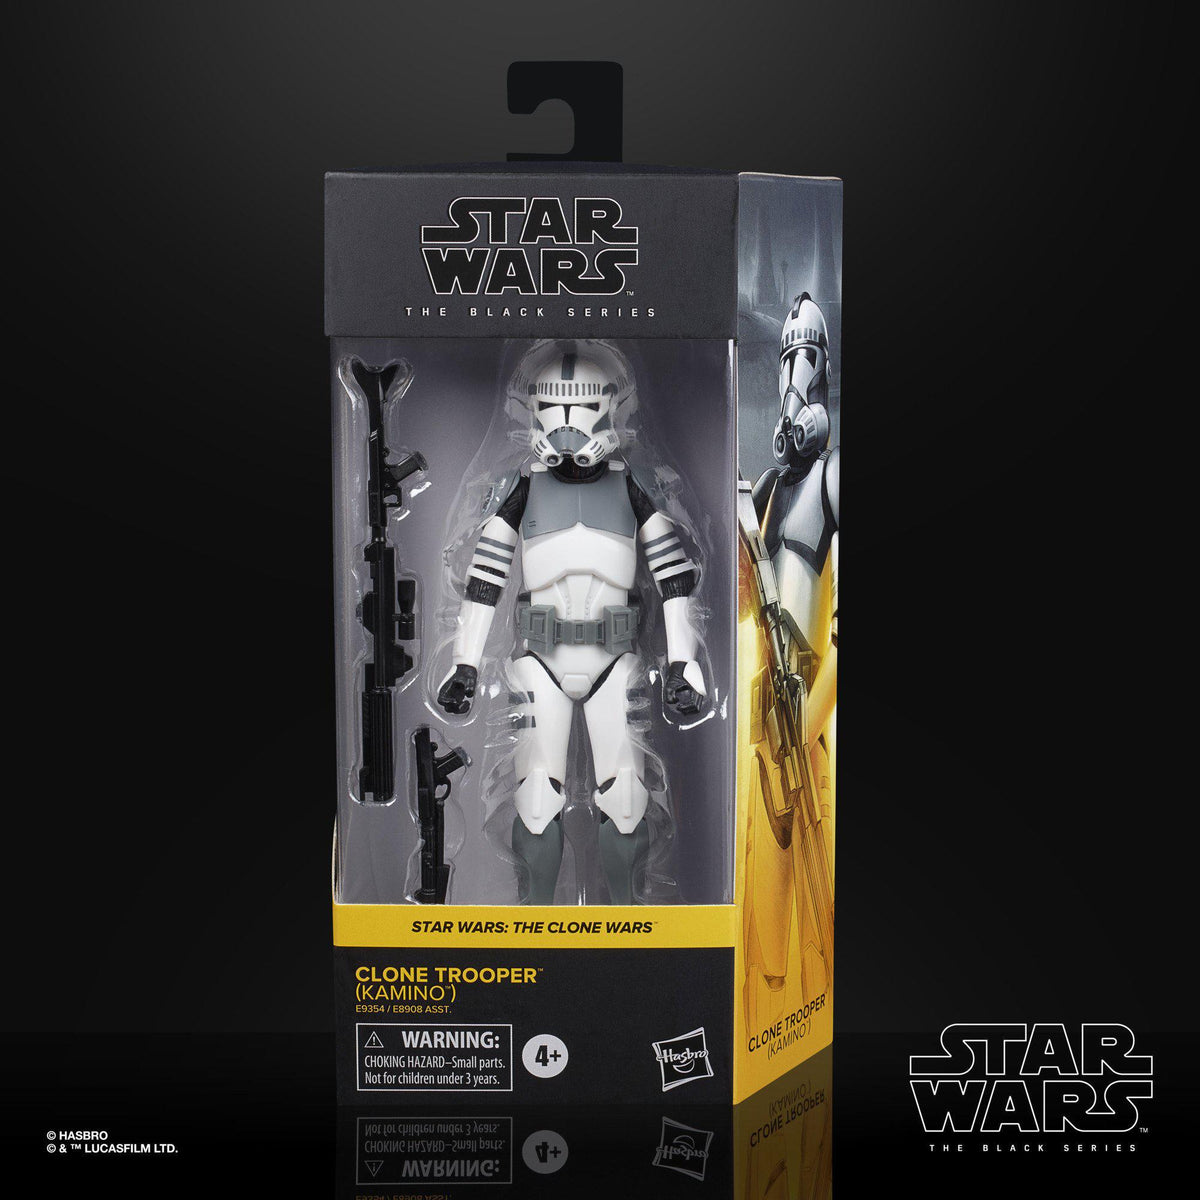 STAR WARS: THE BLACK SERIES - CLONE TROOPER (KAMINO) 6-INCH ACTION FIGURE